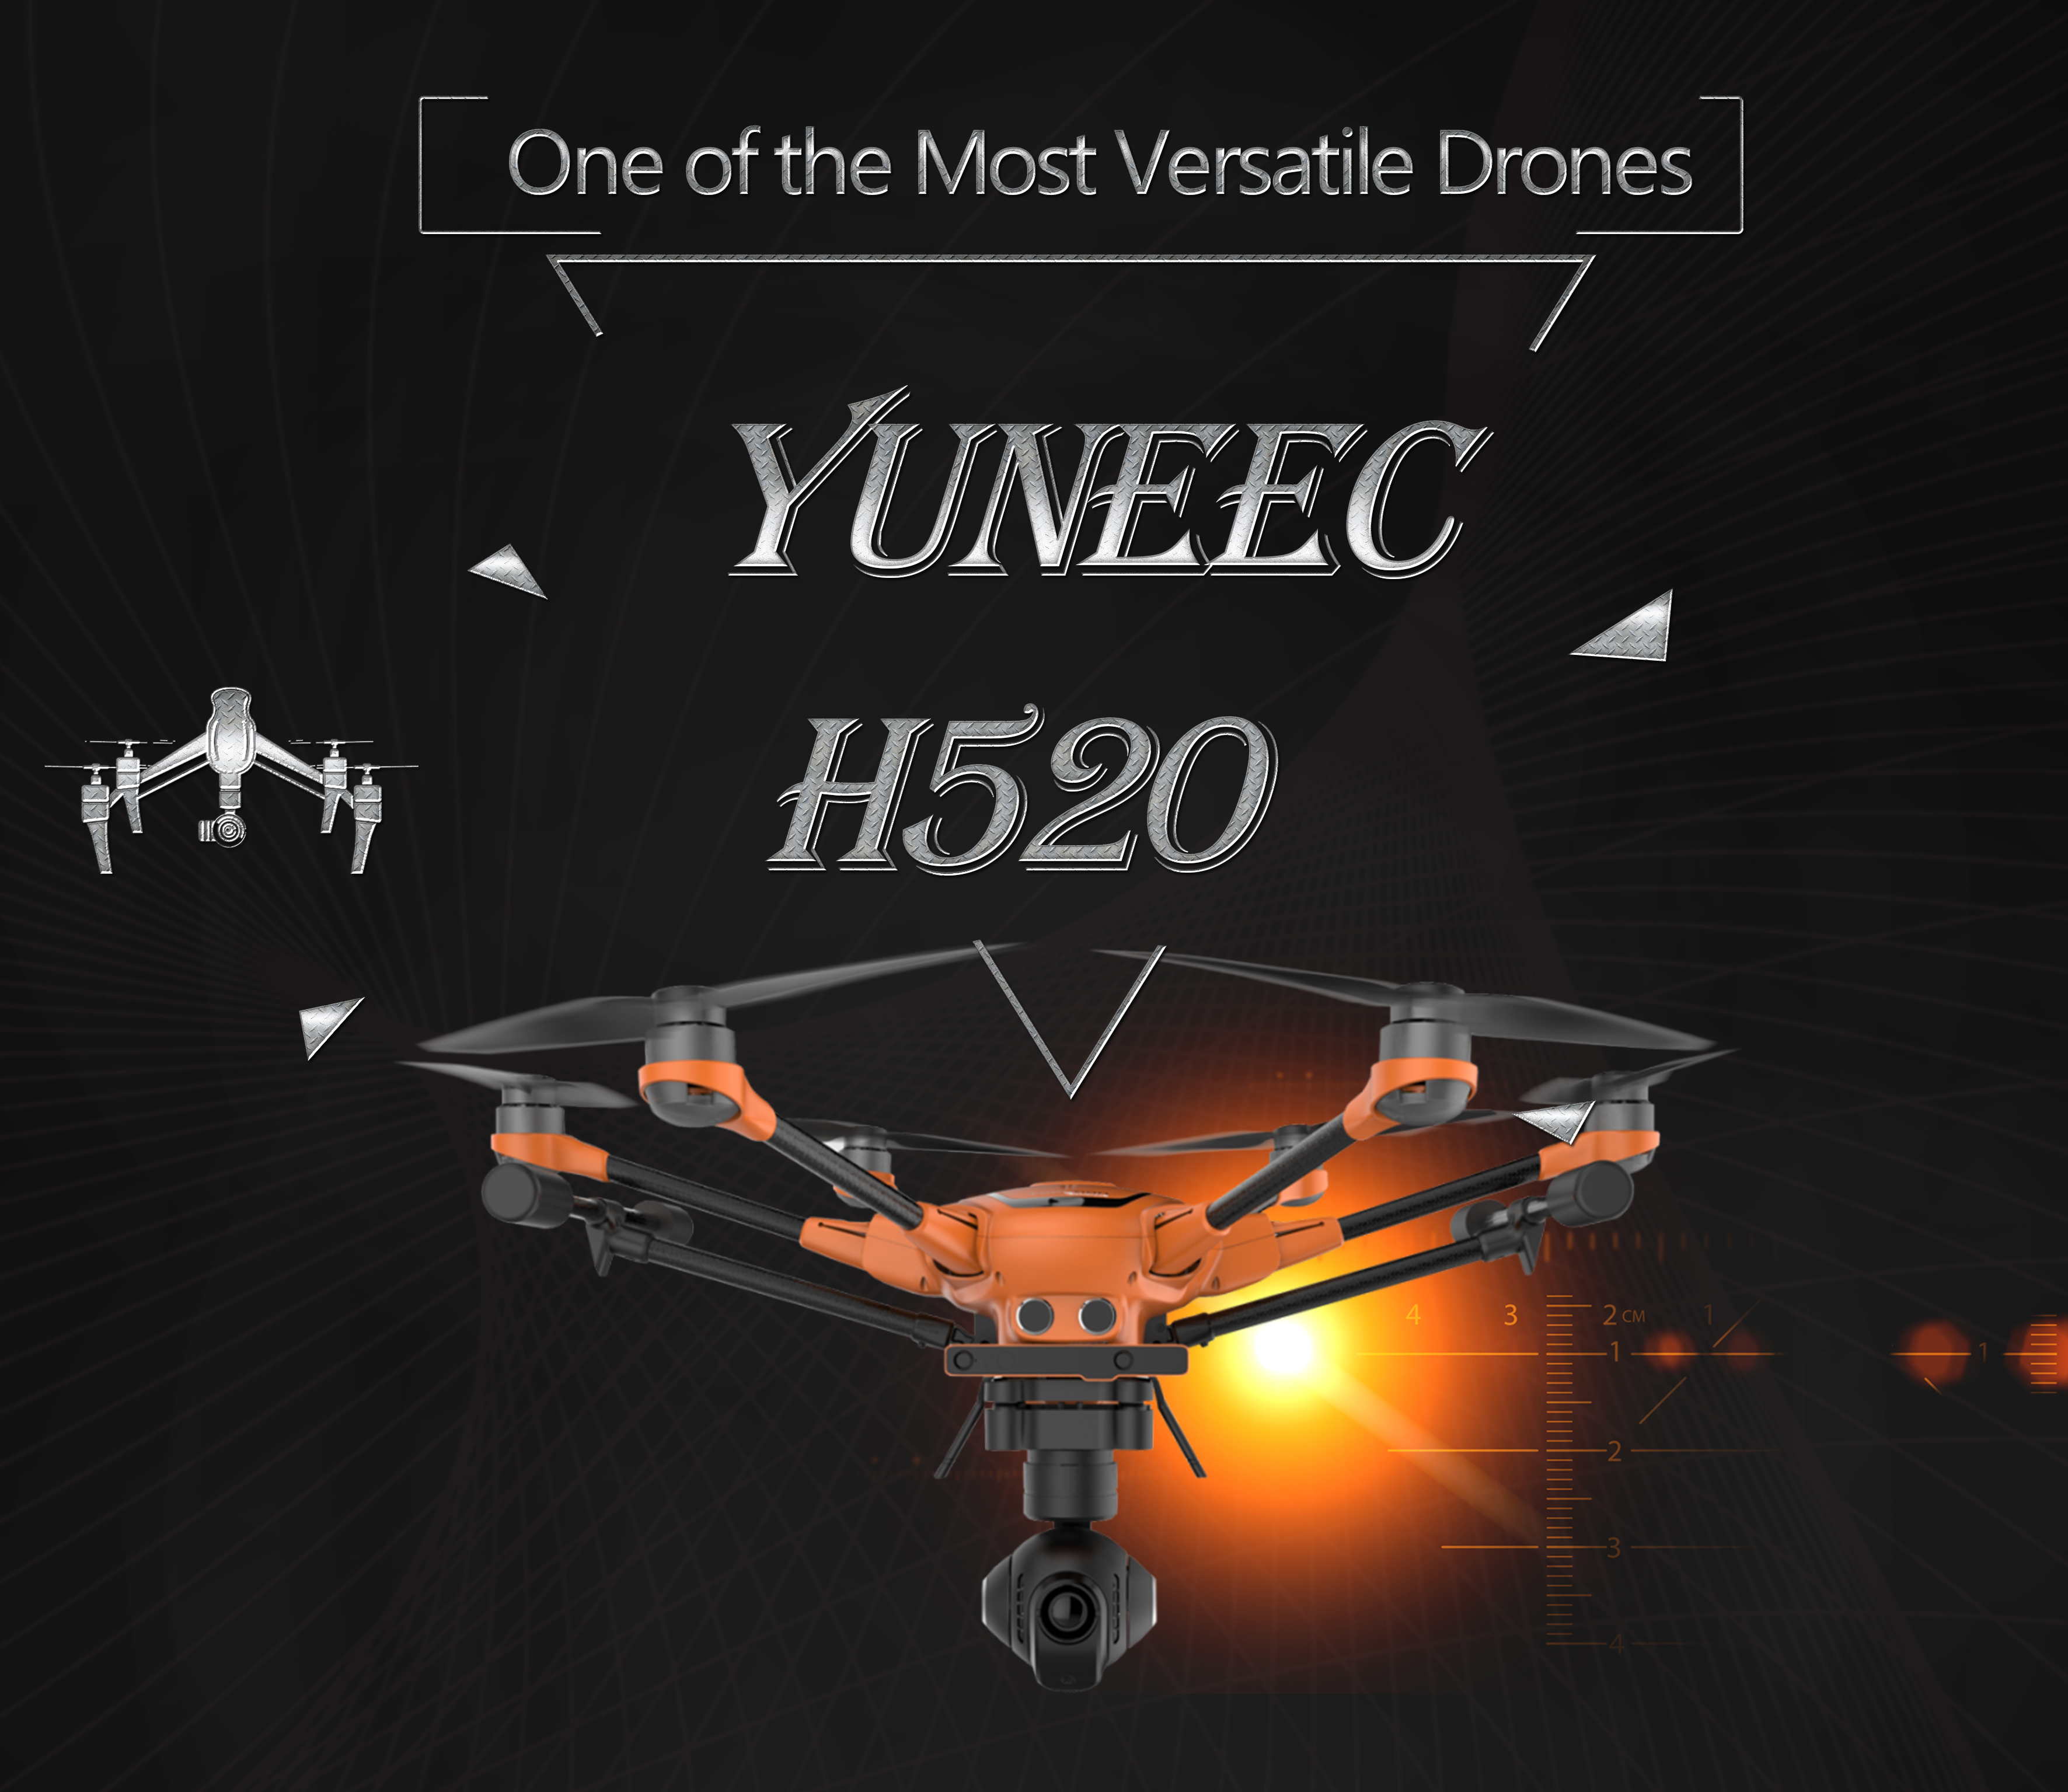 Yuneec H520 – One of the Most Versatile Drones